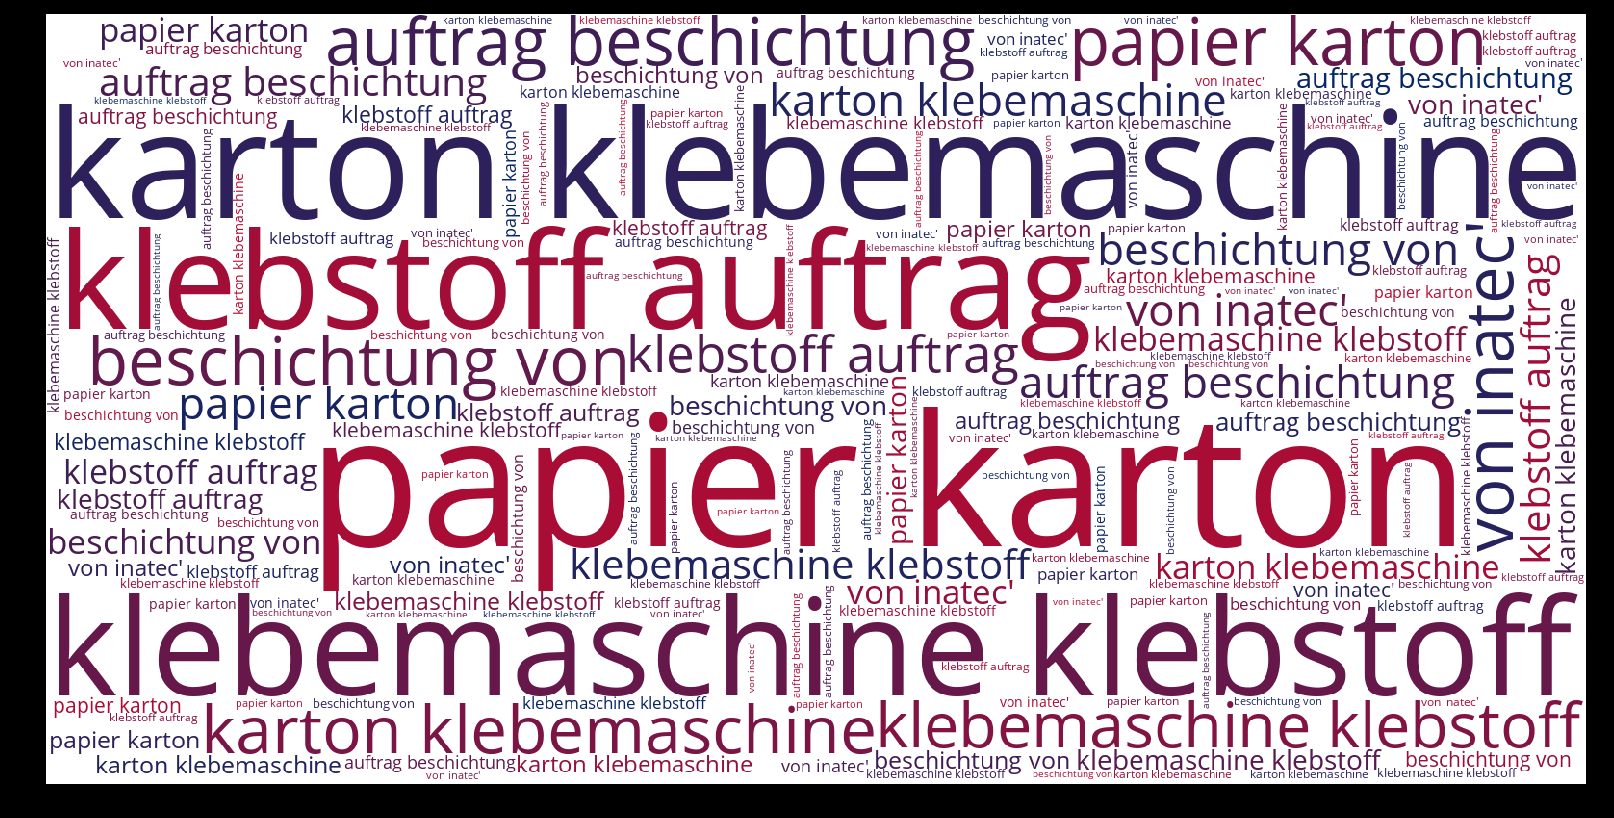 Kartonklebemaschine-wordcloud